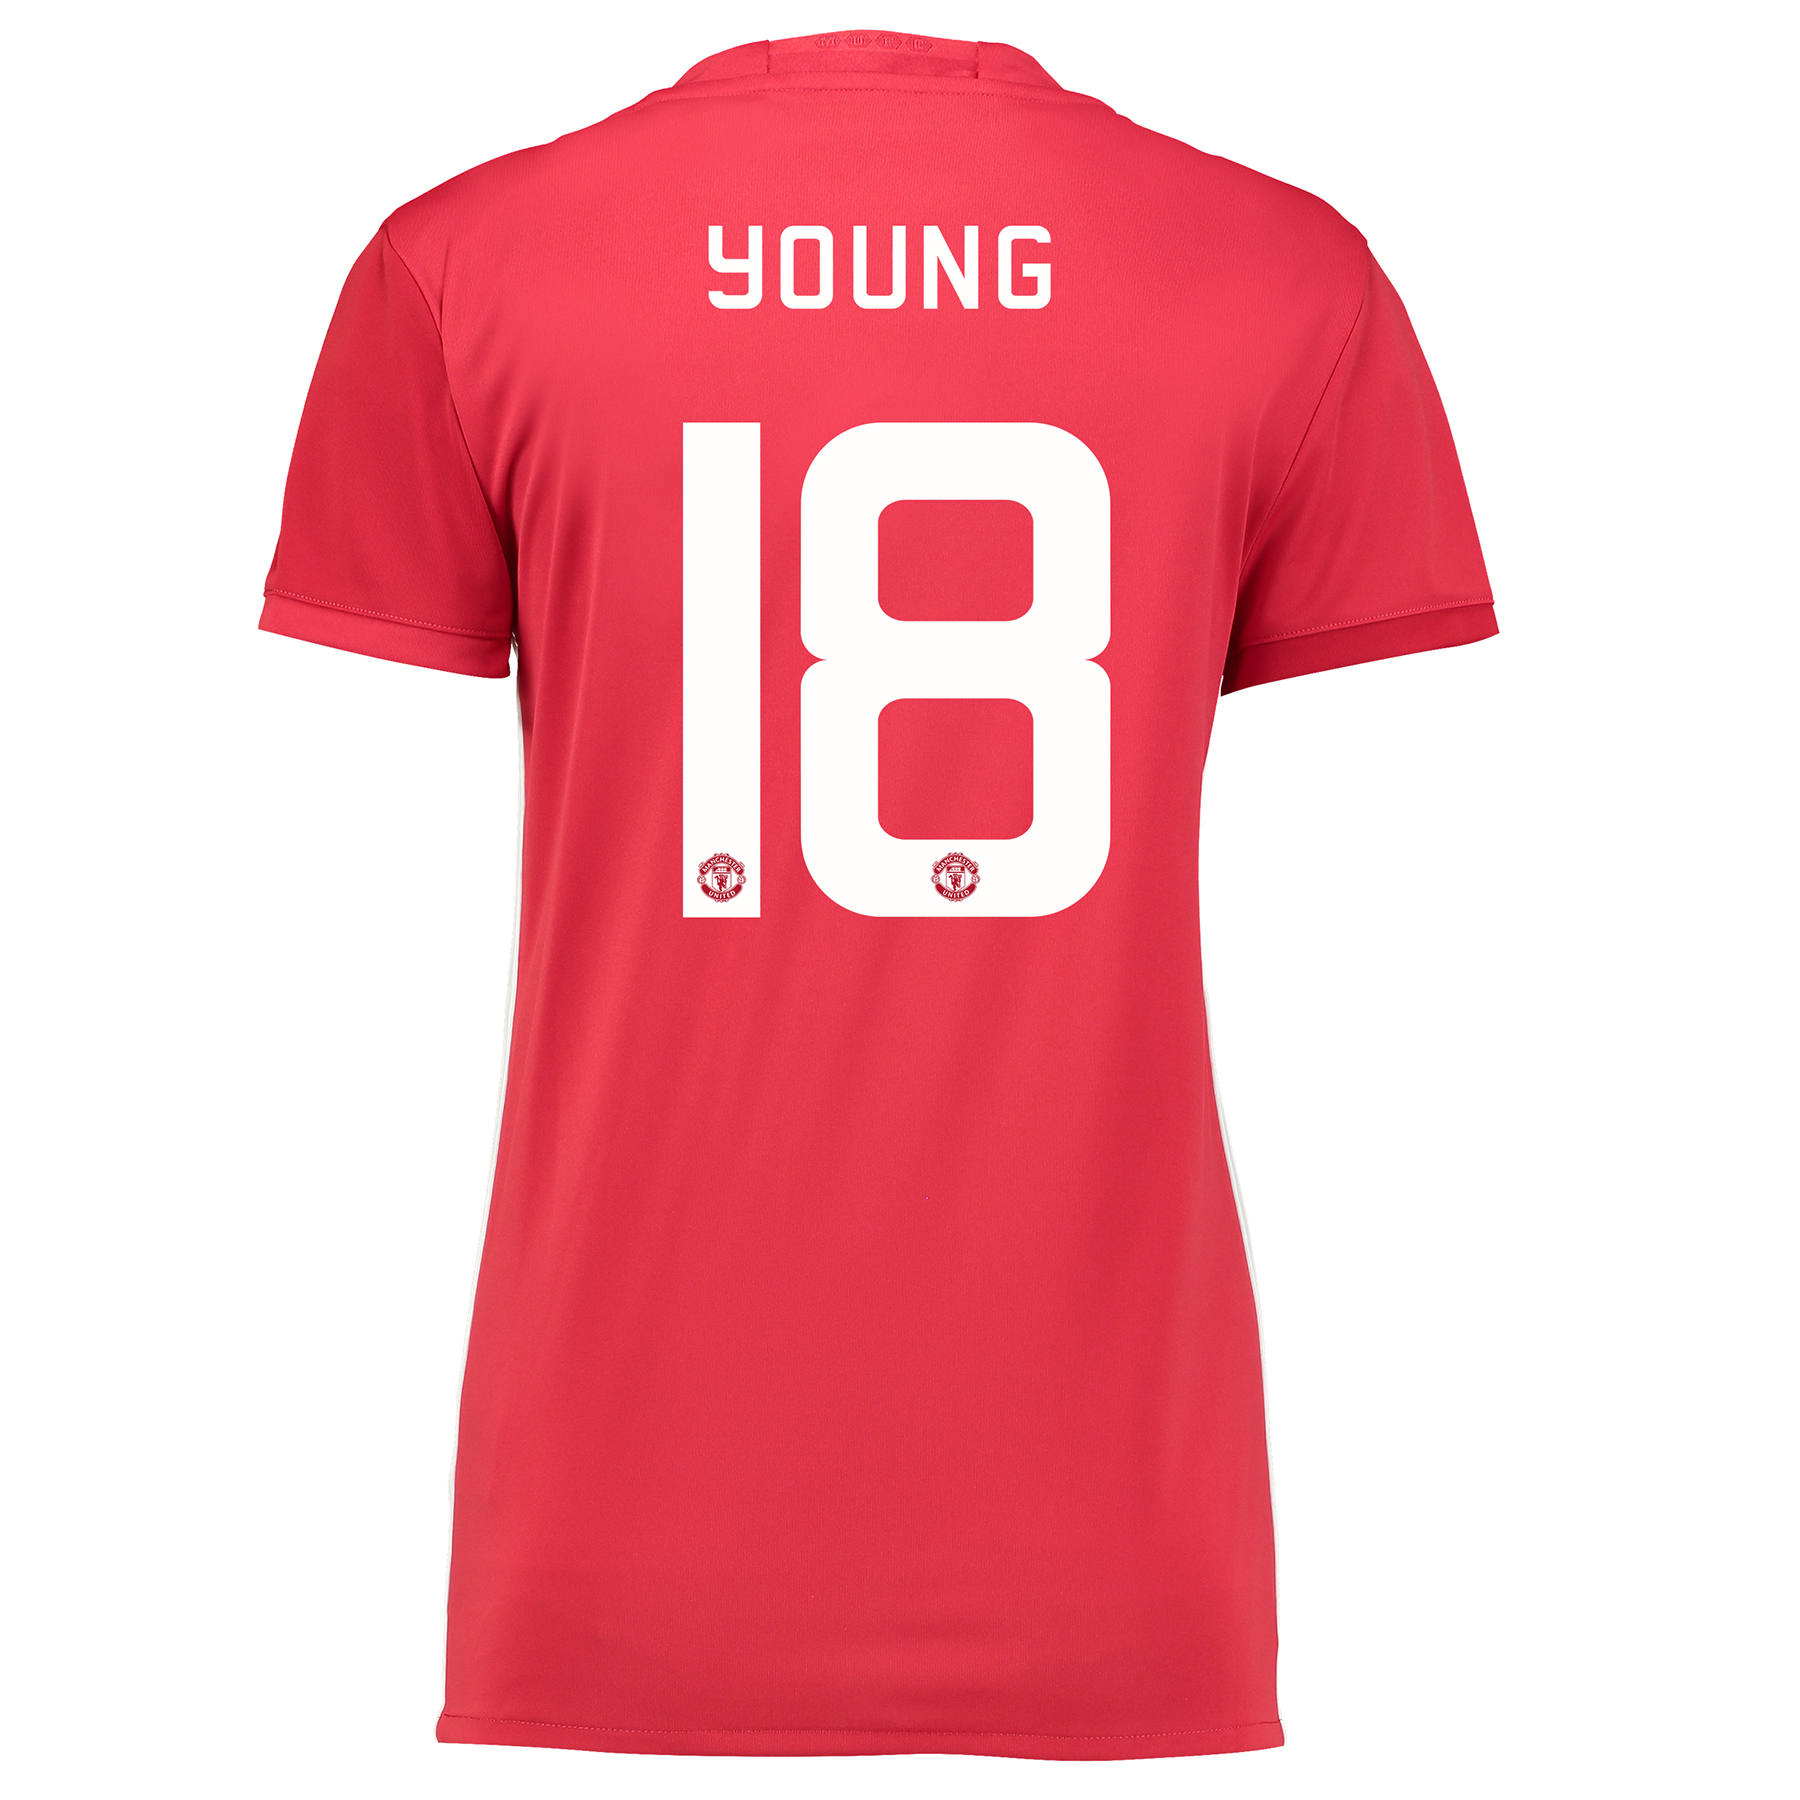 Manchester United Cup Home Shirt 2016-17 - Womens with Young 18 printi